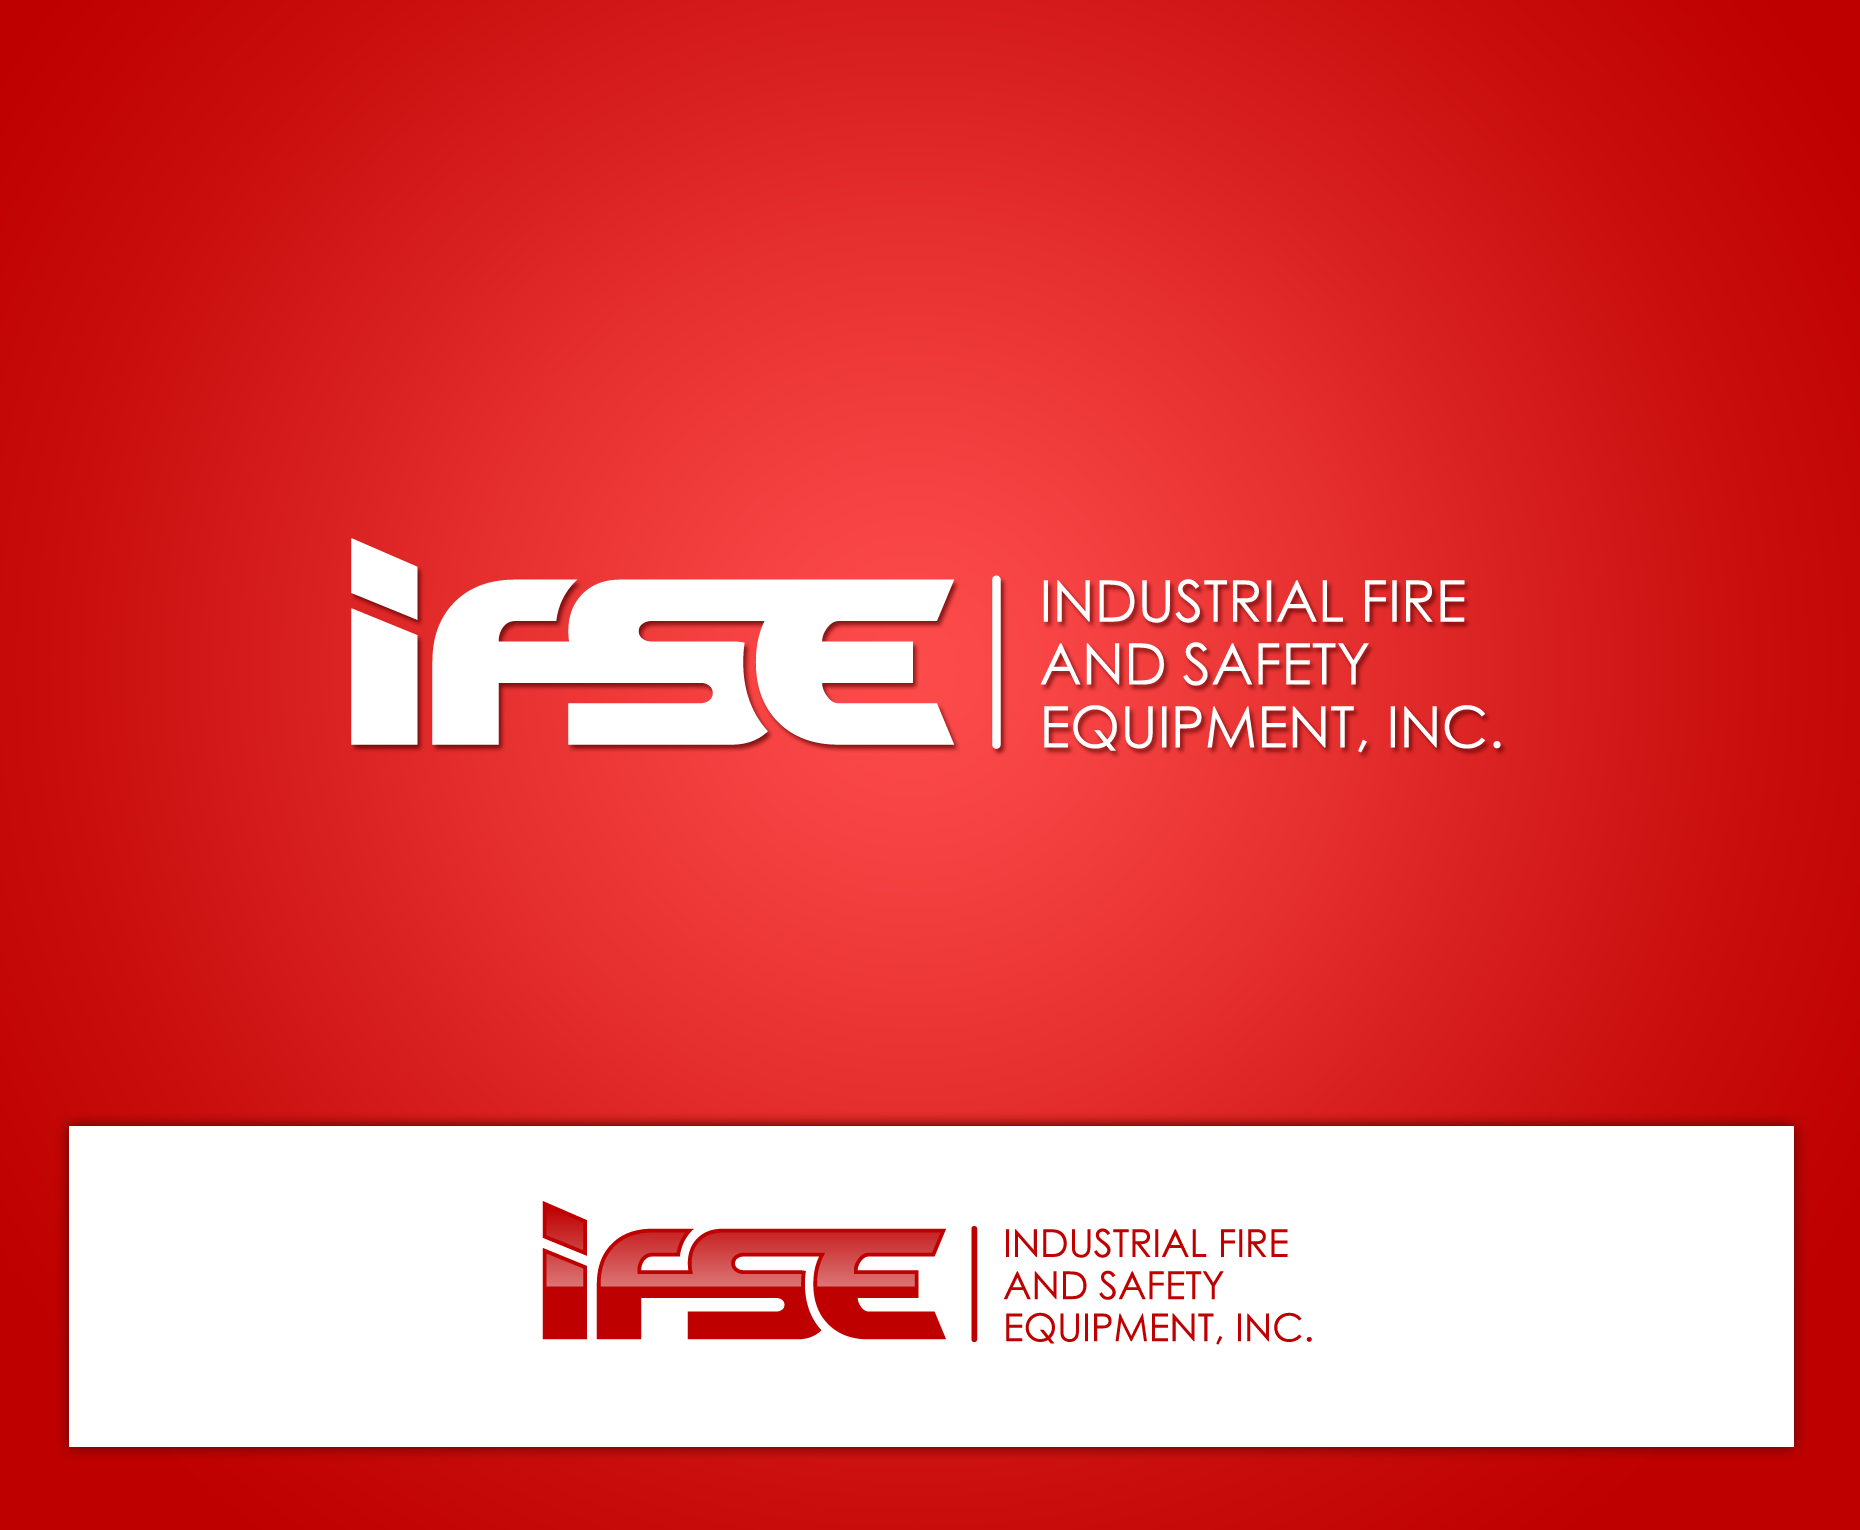 Logo Design by Yans - Entry No. 6 in the Logo Design Contest New Logo Design for Industrial Fire and Safety Equipment, Inc..